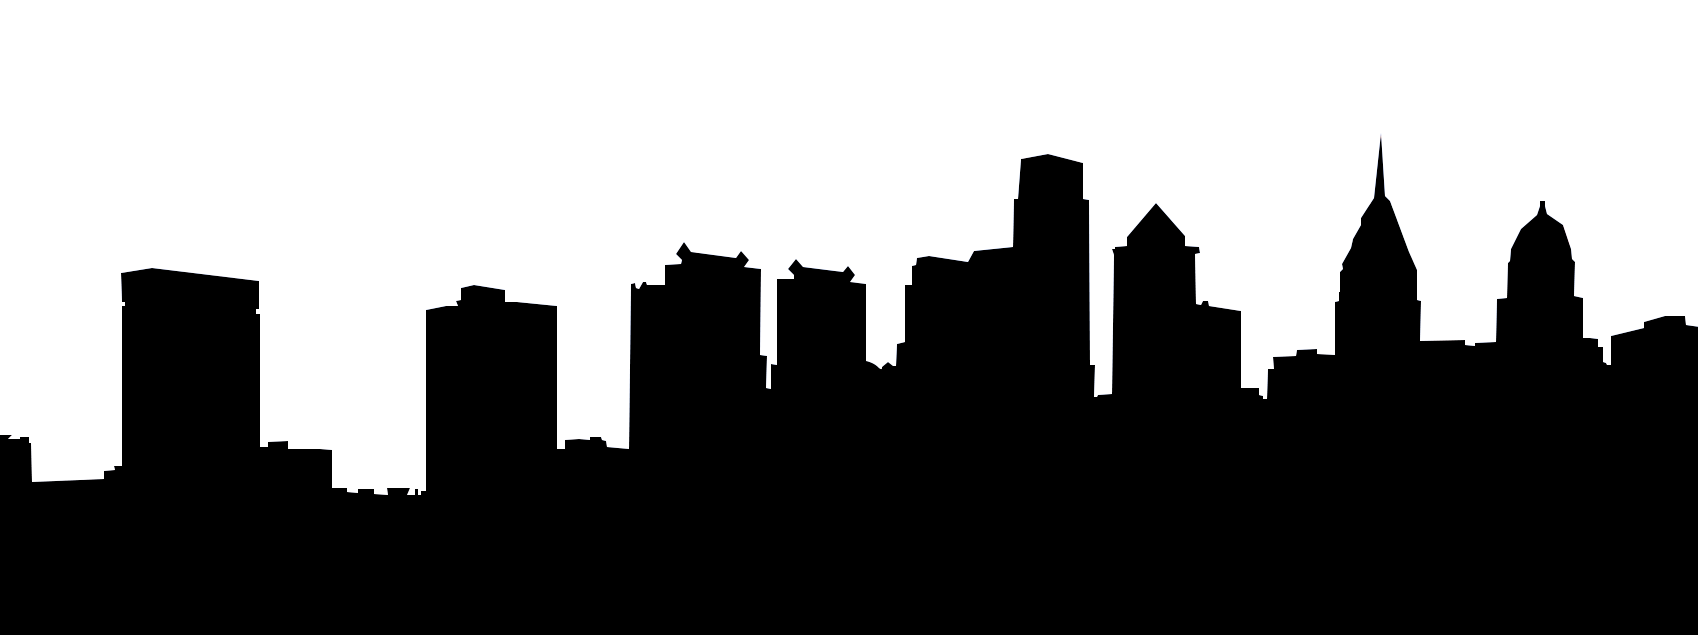 1698x635 Philly Skyline Silhouette